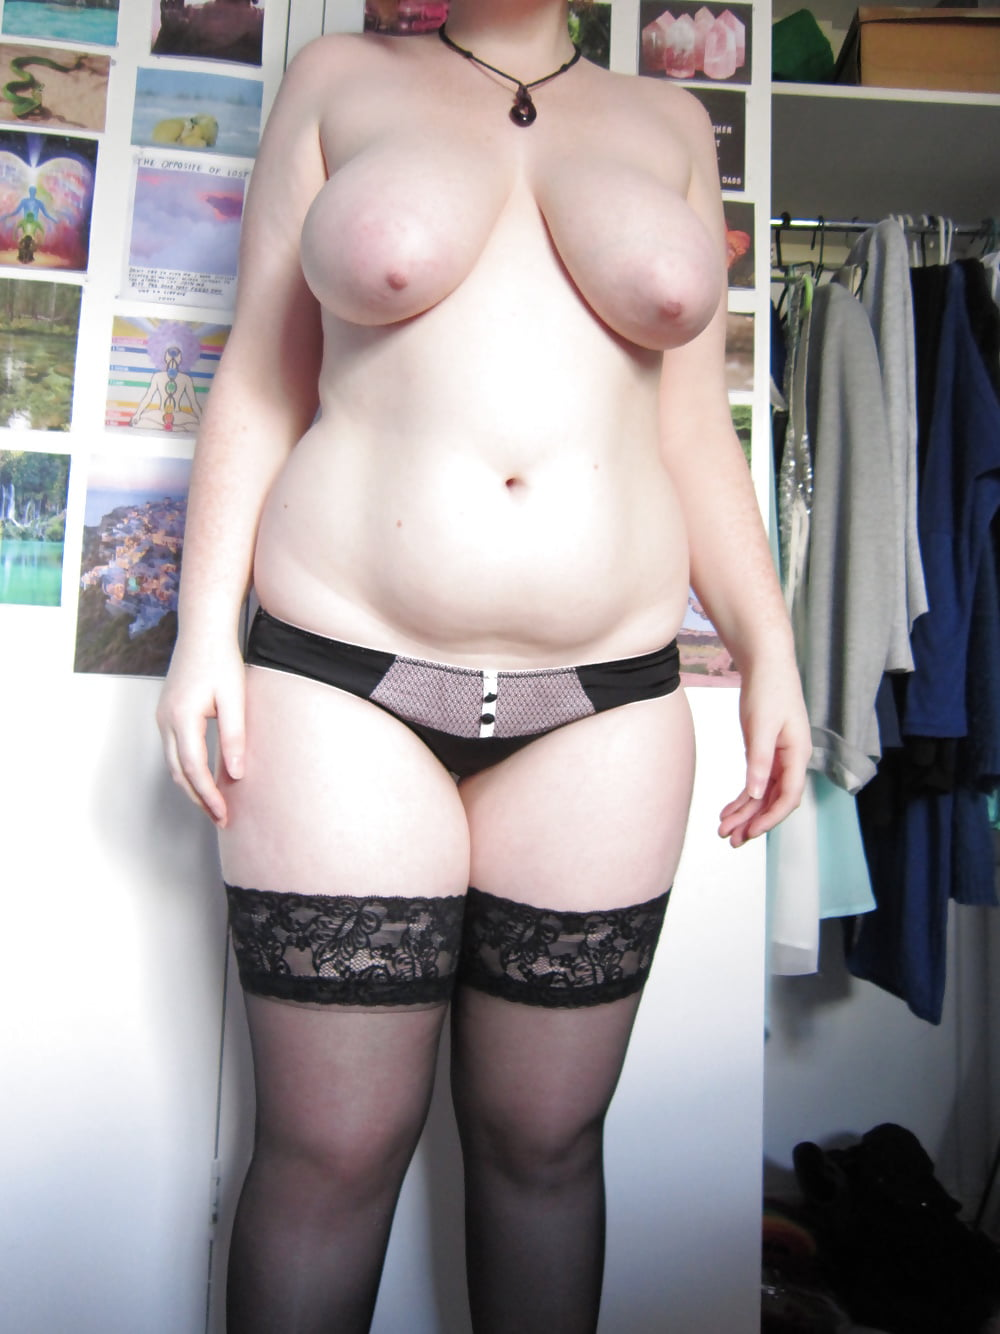 Chubby goddess, milf jewess with enormous breasts nude